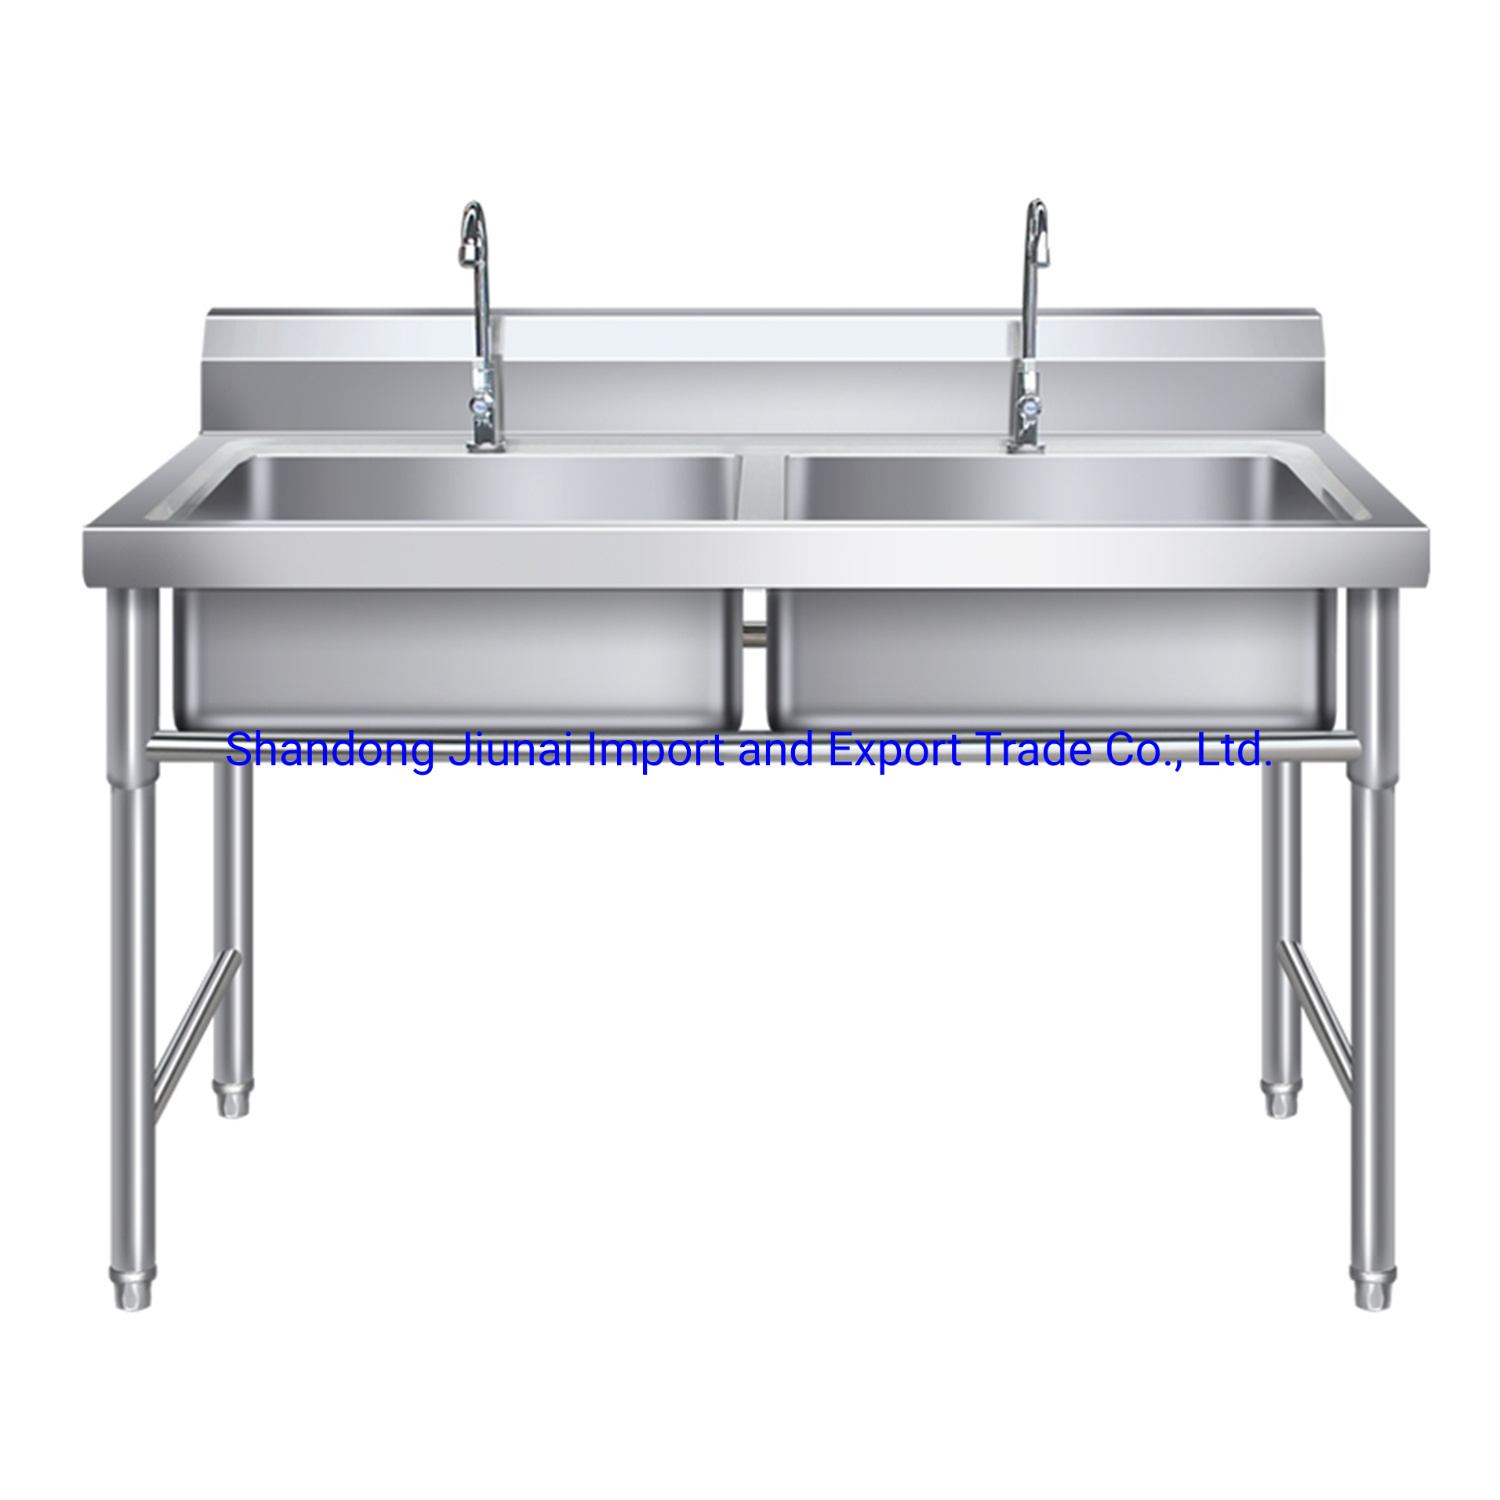 China Kitchen Corner Sink For Sale Price Of Drain Kit Kitchen Basin Sink 3 Meters China Stainless Steel Sink